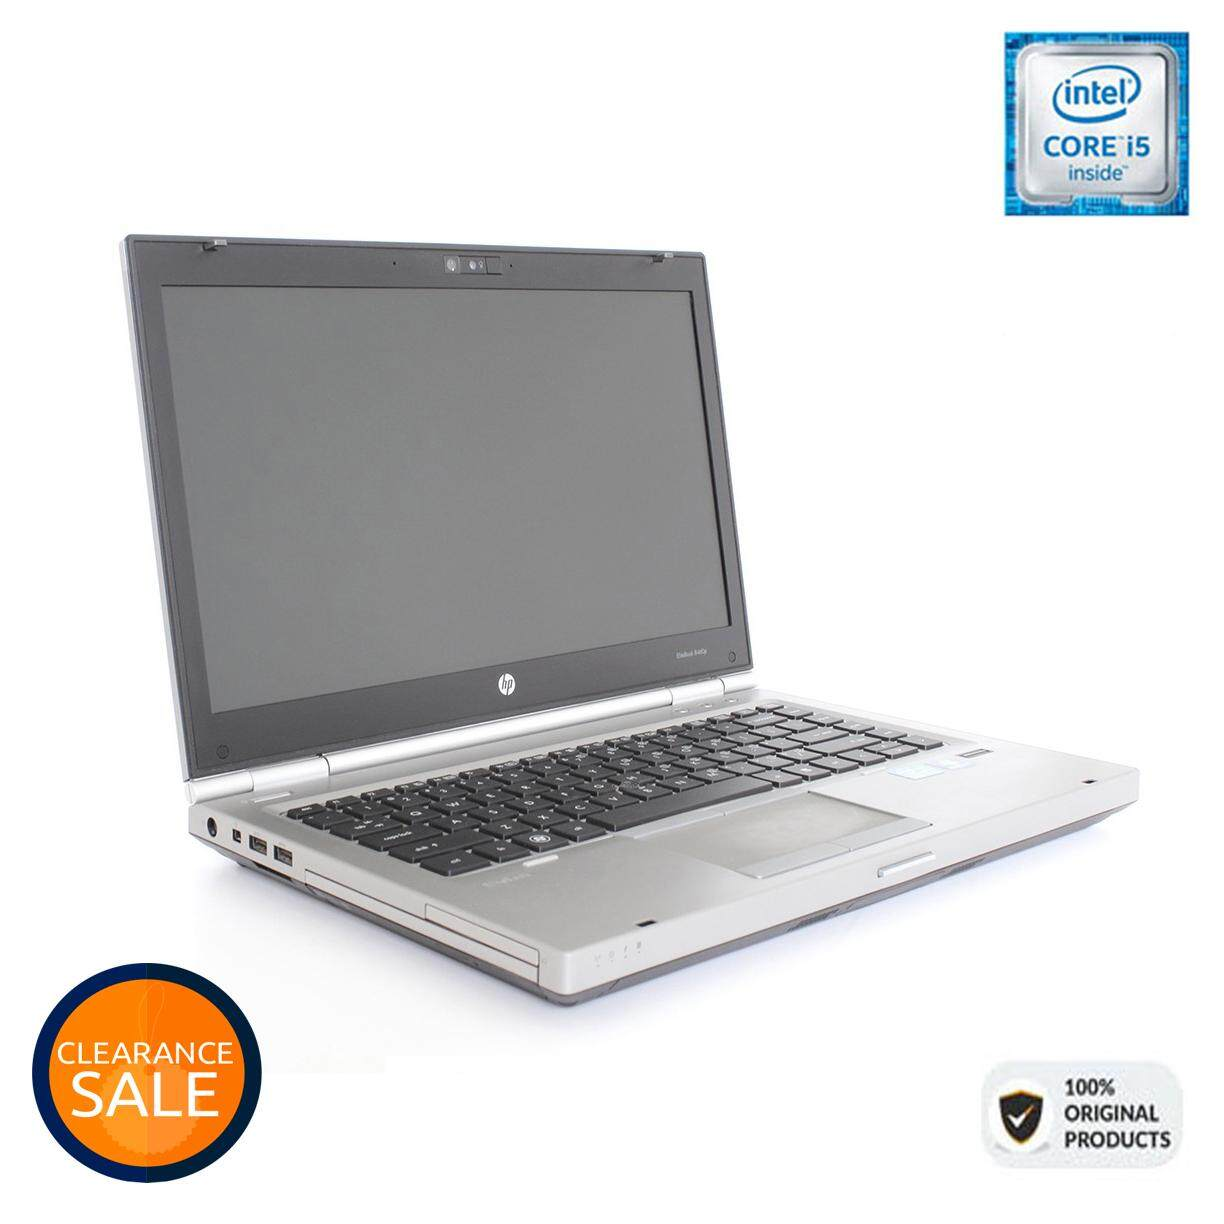 HP ELITEBOOK 8460P - CORE I5 | 4GB |1000GB HDD | SUPERDUTY [ORIGINAL REMANUFACTURED] Malaysia